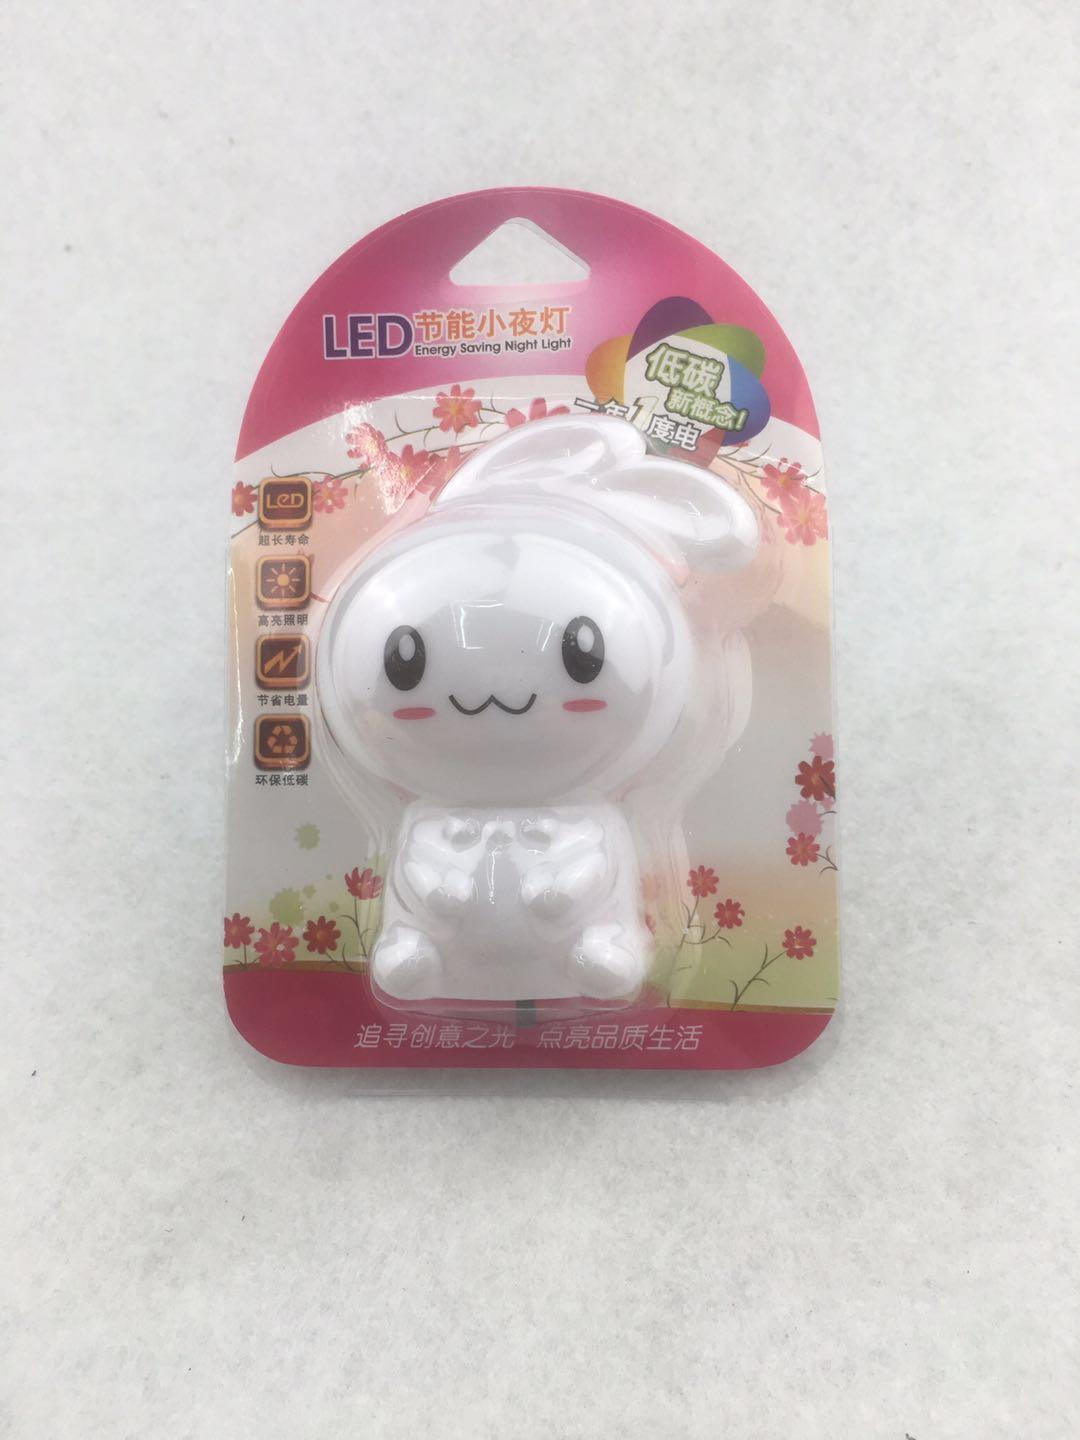 W097 US mini rabbit switch plug in led night light For Baby Bedroom